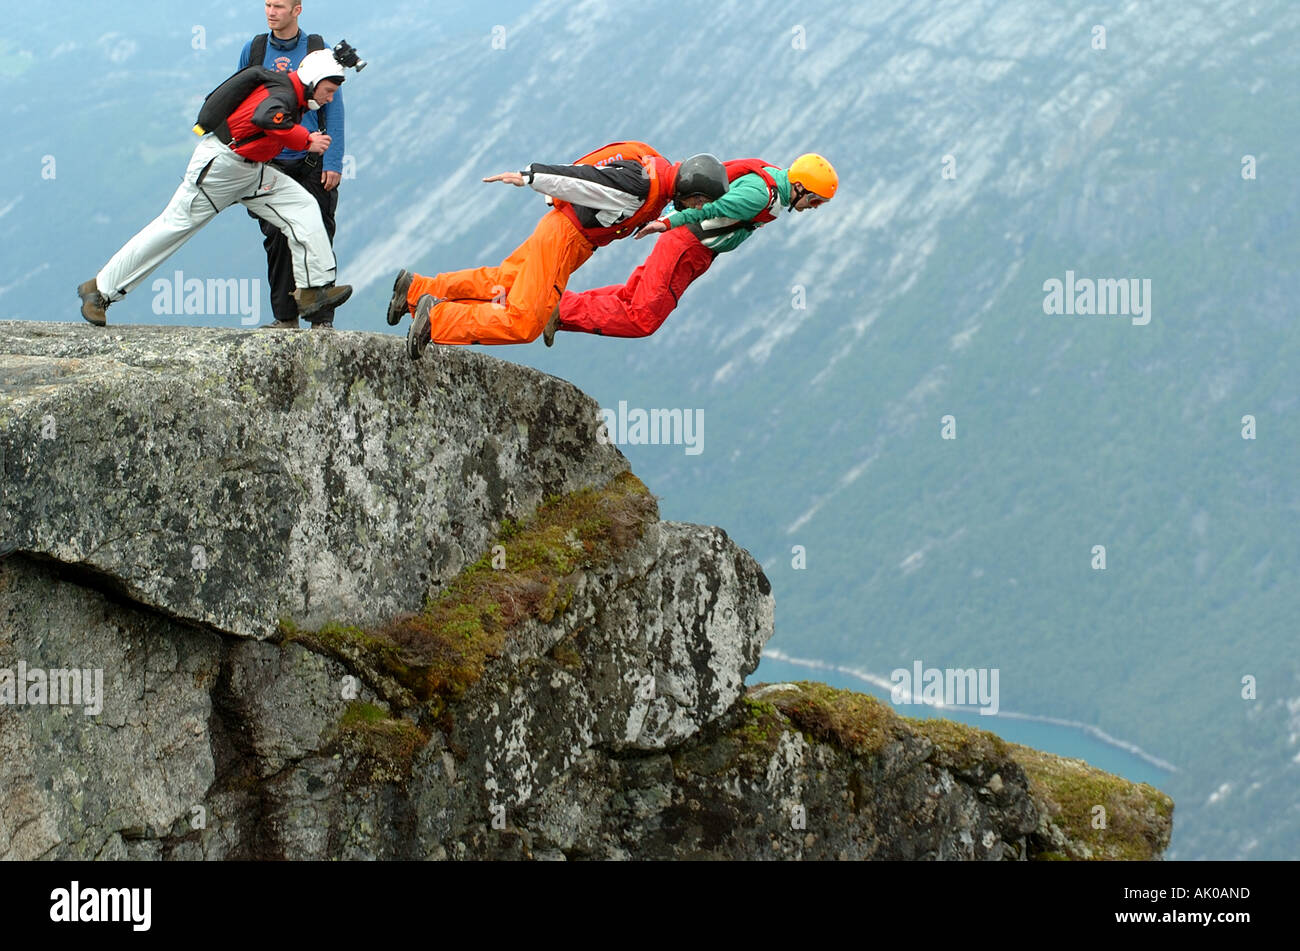 BASE jumpers taking off big cliff in a fjord in Norway - Stock Image